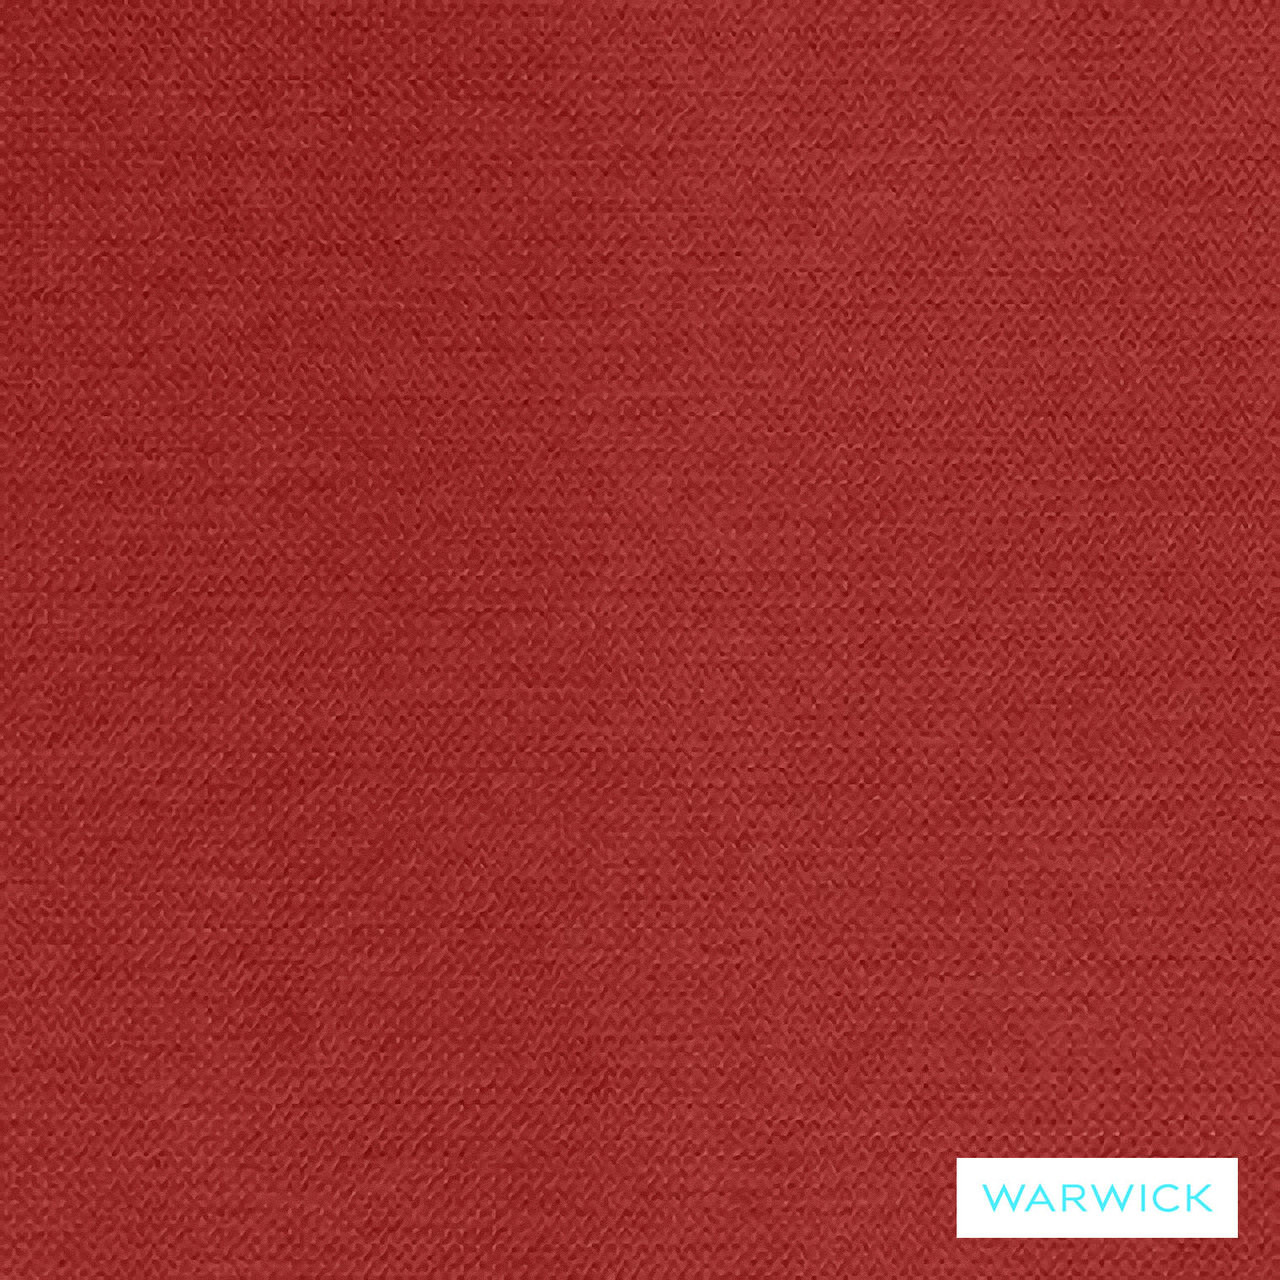 Warwick Prague Scarlet  | Curtain & Upholstery fabric - Plain, Red, Synthetic, Washable, Commercial Use, Halo